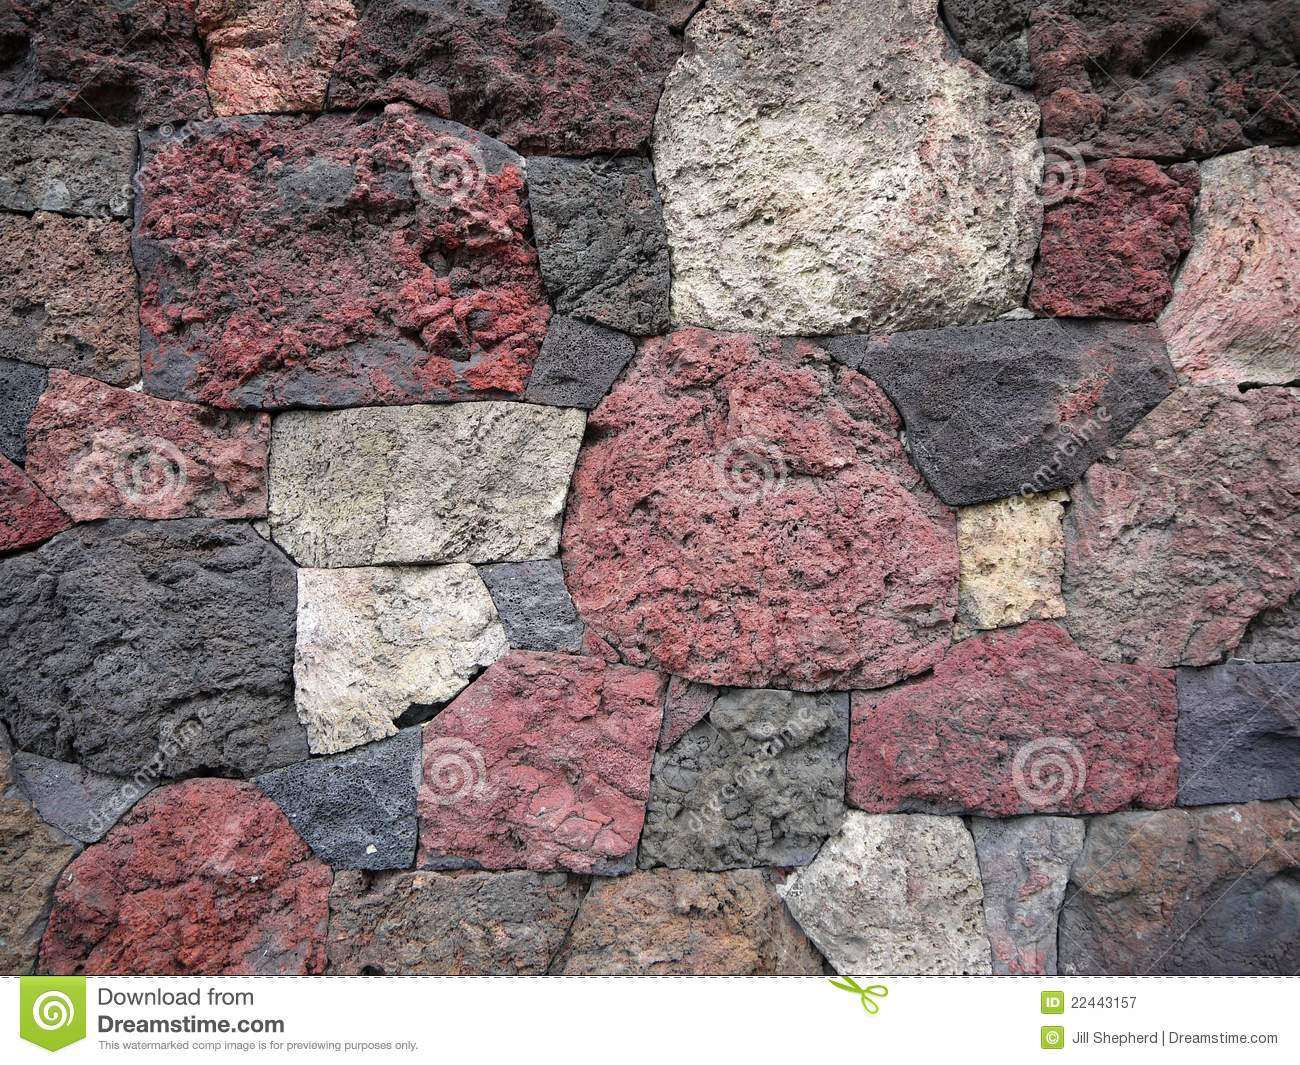 Garden scoria lava rock wall stock image image 22443157 for Brown lava rock for landscaping